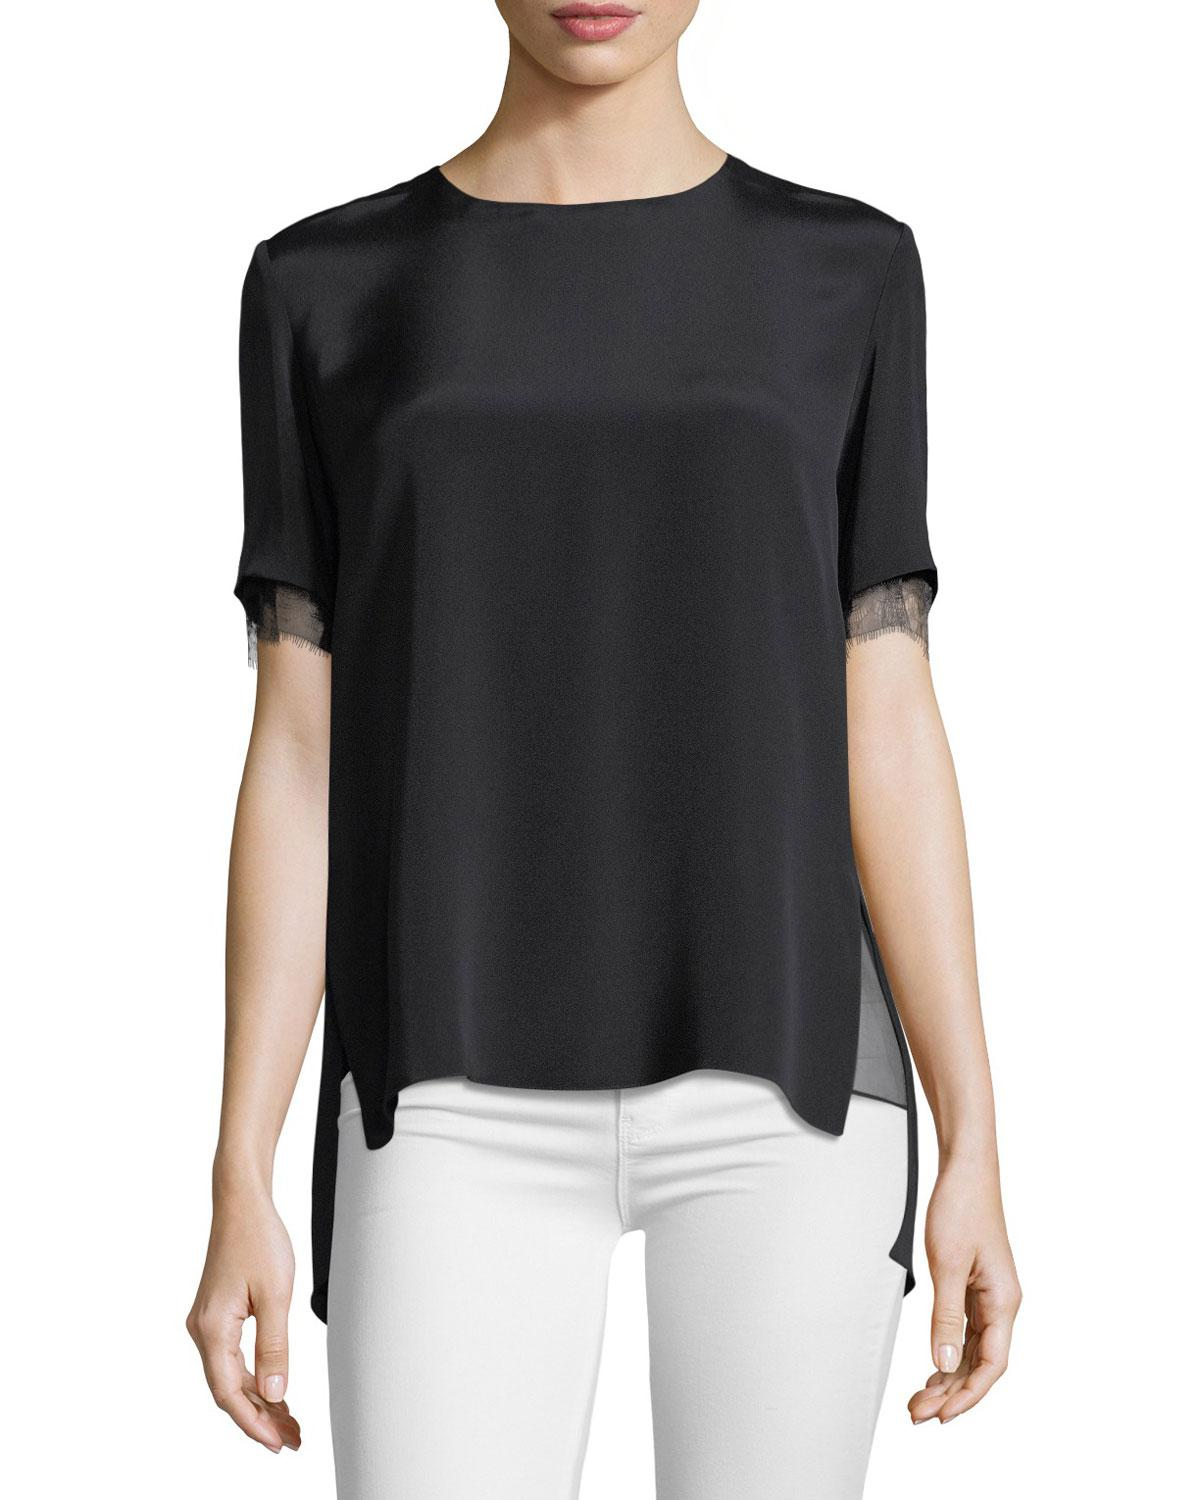 Lyst adam lippes lace trim crepe t shirt in black for Adam lippes t shirt